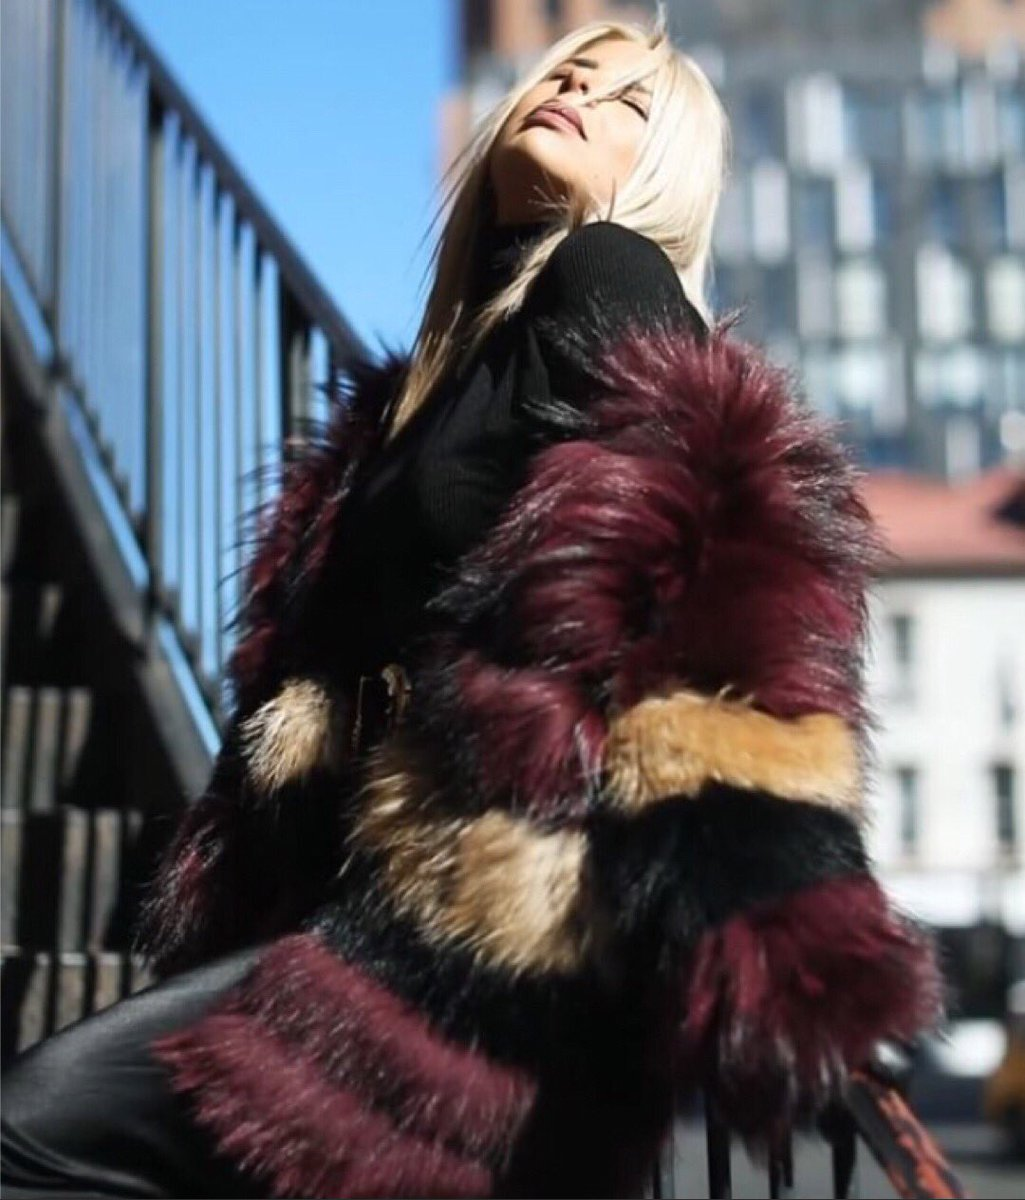 2341eeddfe79 Making a statement #NYFW roundup • Shop http://typealpha.com • #Fur  #FurCoat #FurFashion #Style #Fashion #WinterStyle #NYCFashion #FauxFurCoat  #TeddyCoat ...